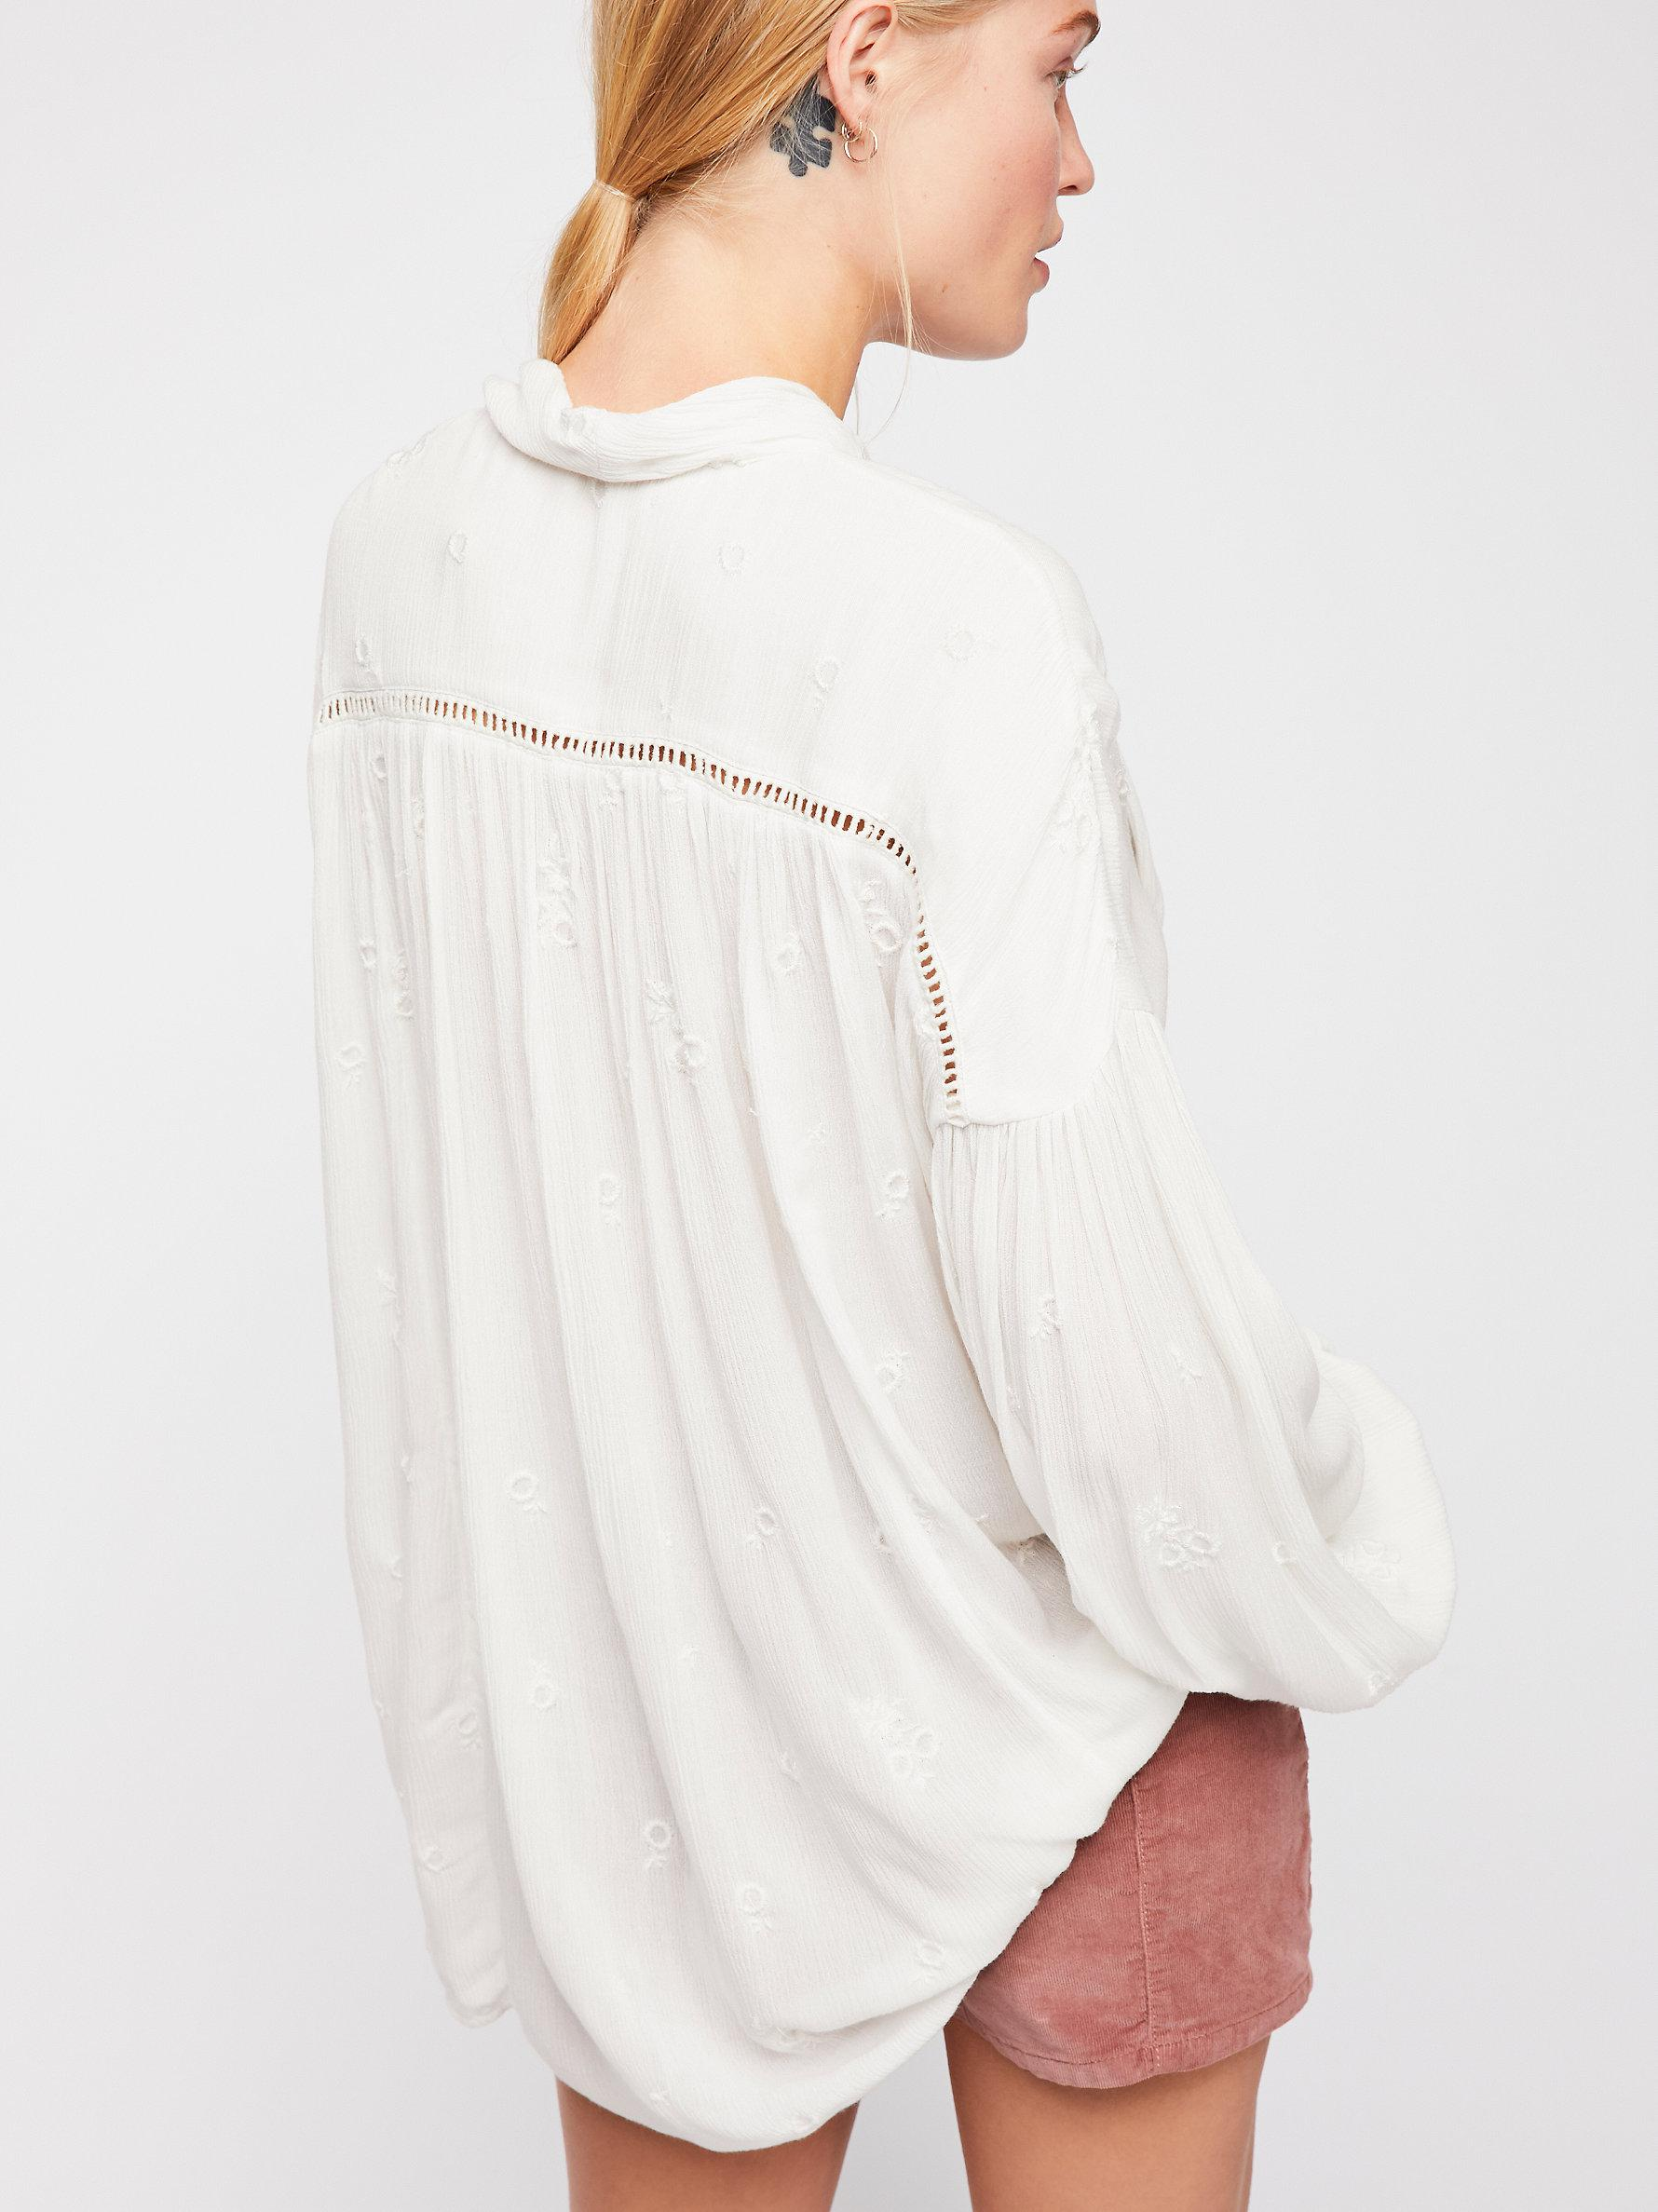 e8e239e6611974 Free People Wishful Moments Blouse in White - Lyst